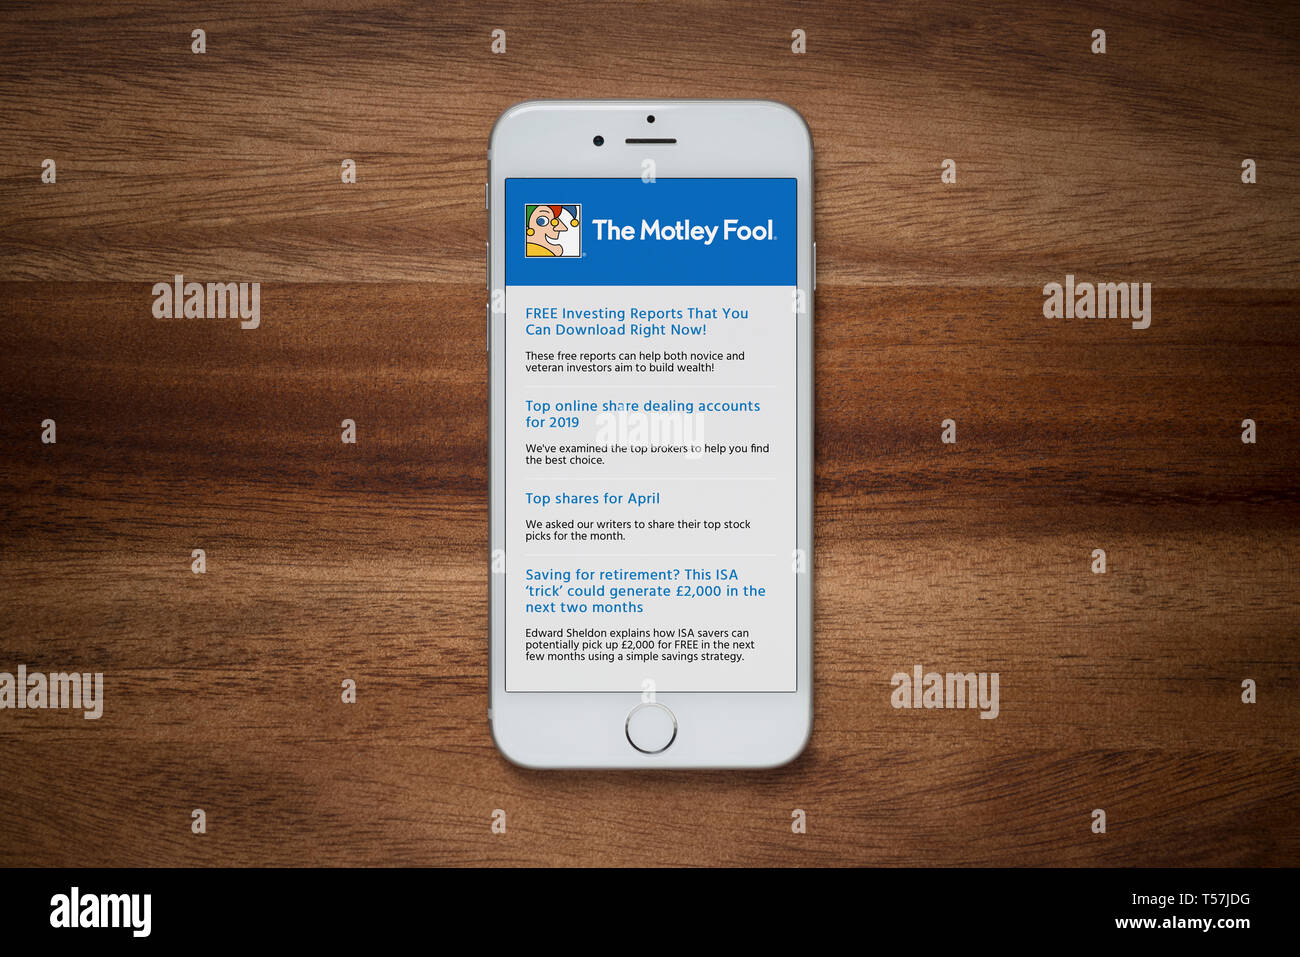 An iPhone showing The Motley Fool website rests on a plain wooden table (Editorial use only). - Stock Image